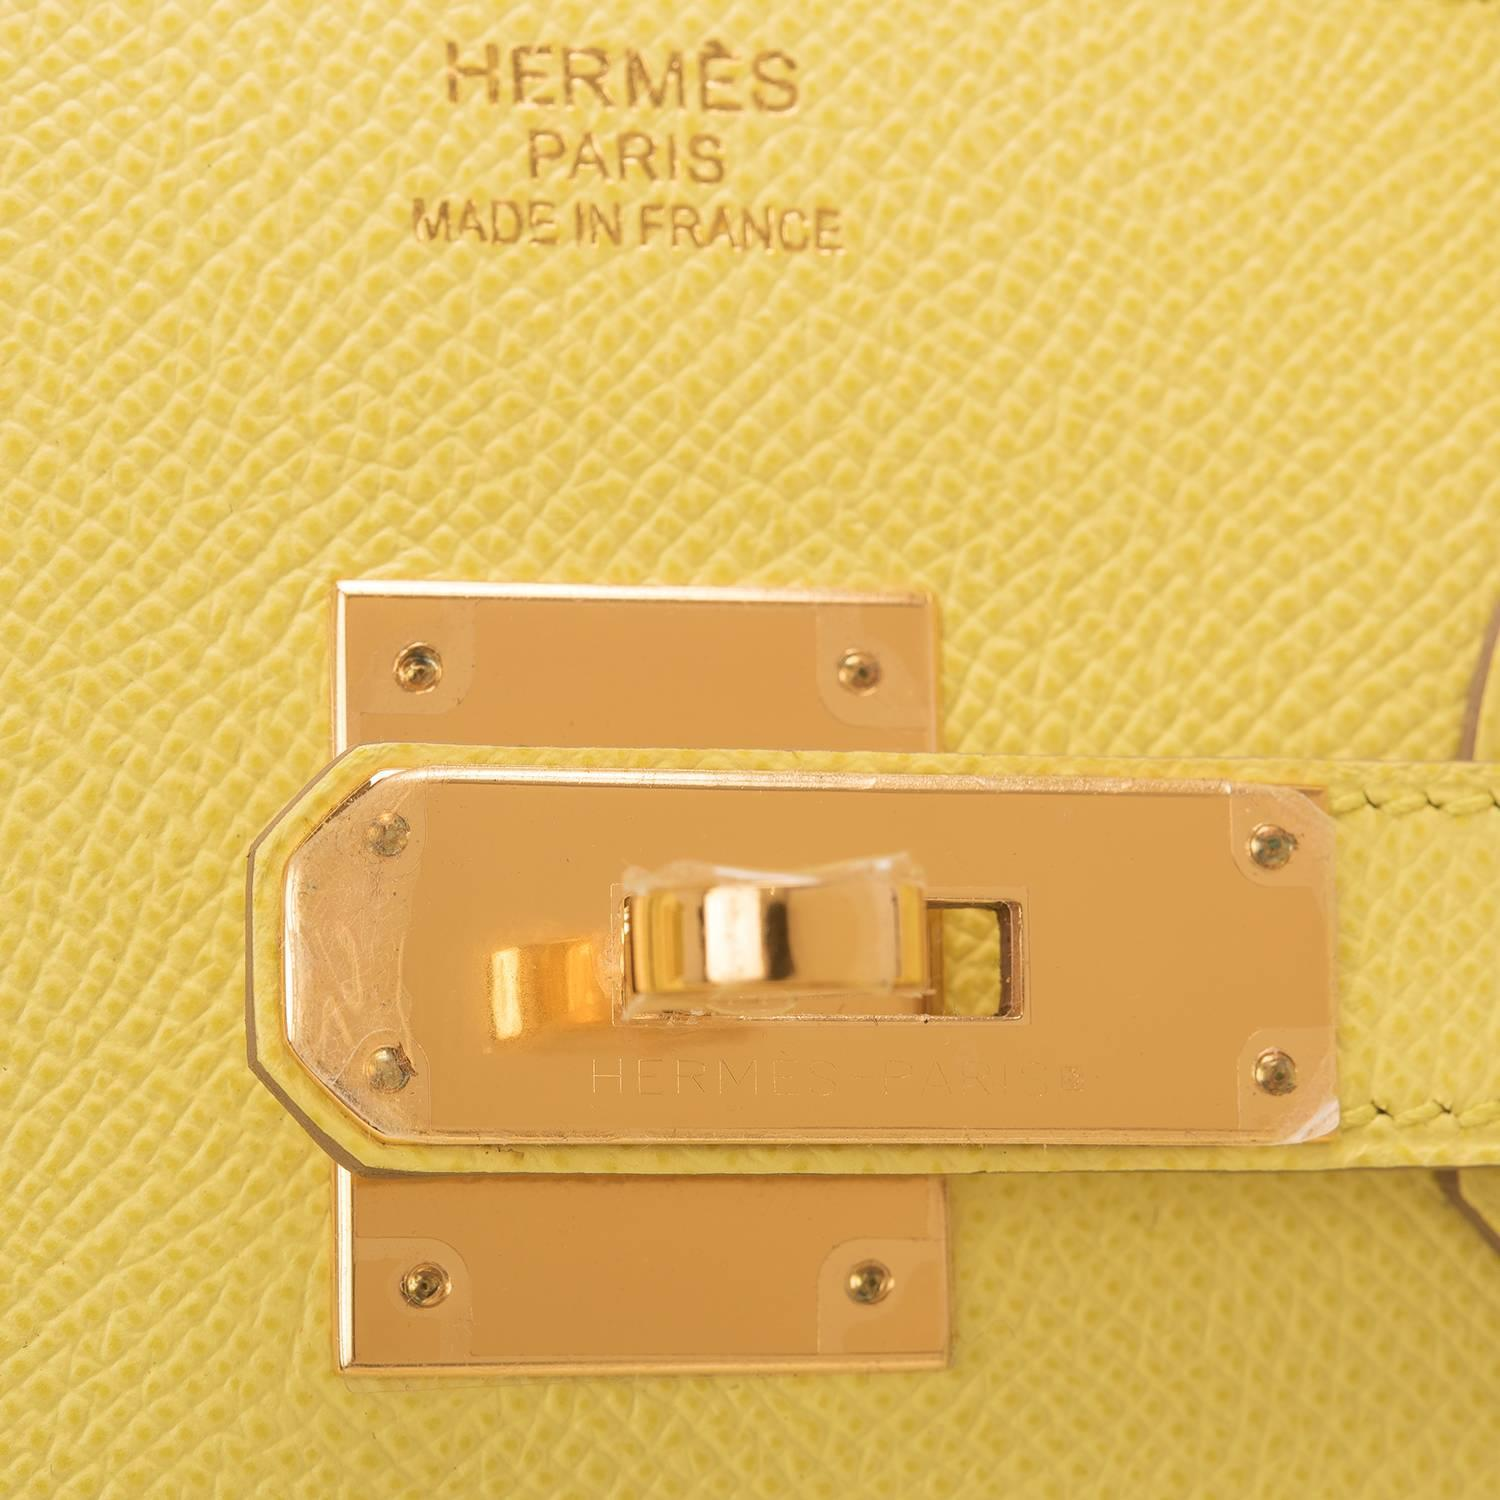 hermes Cityhall charcoal grey mens